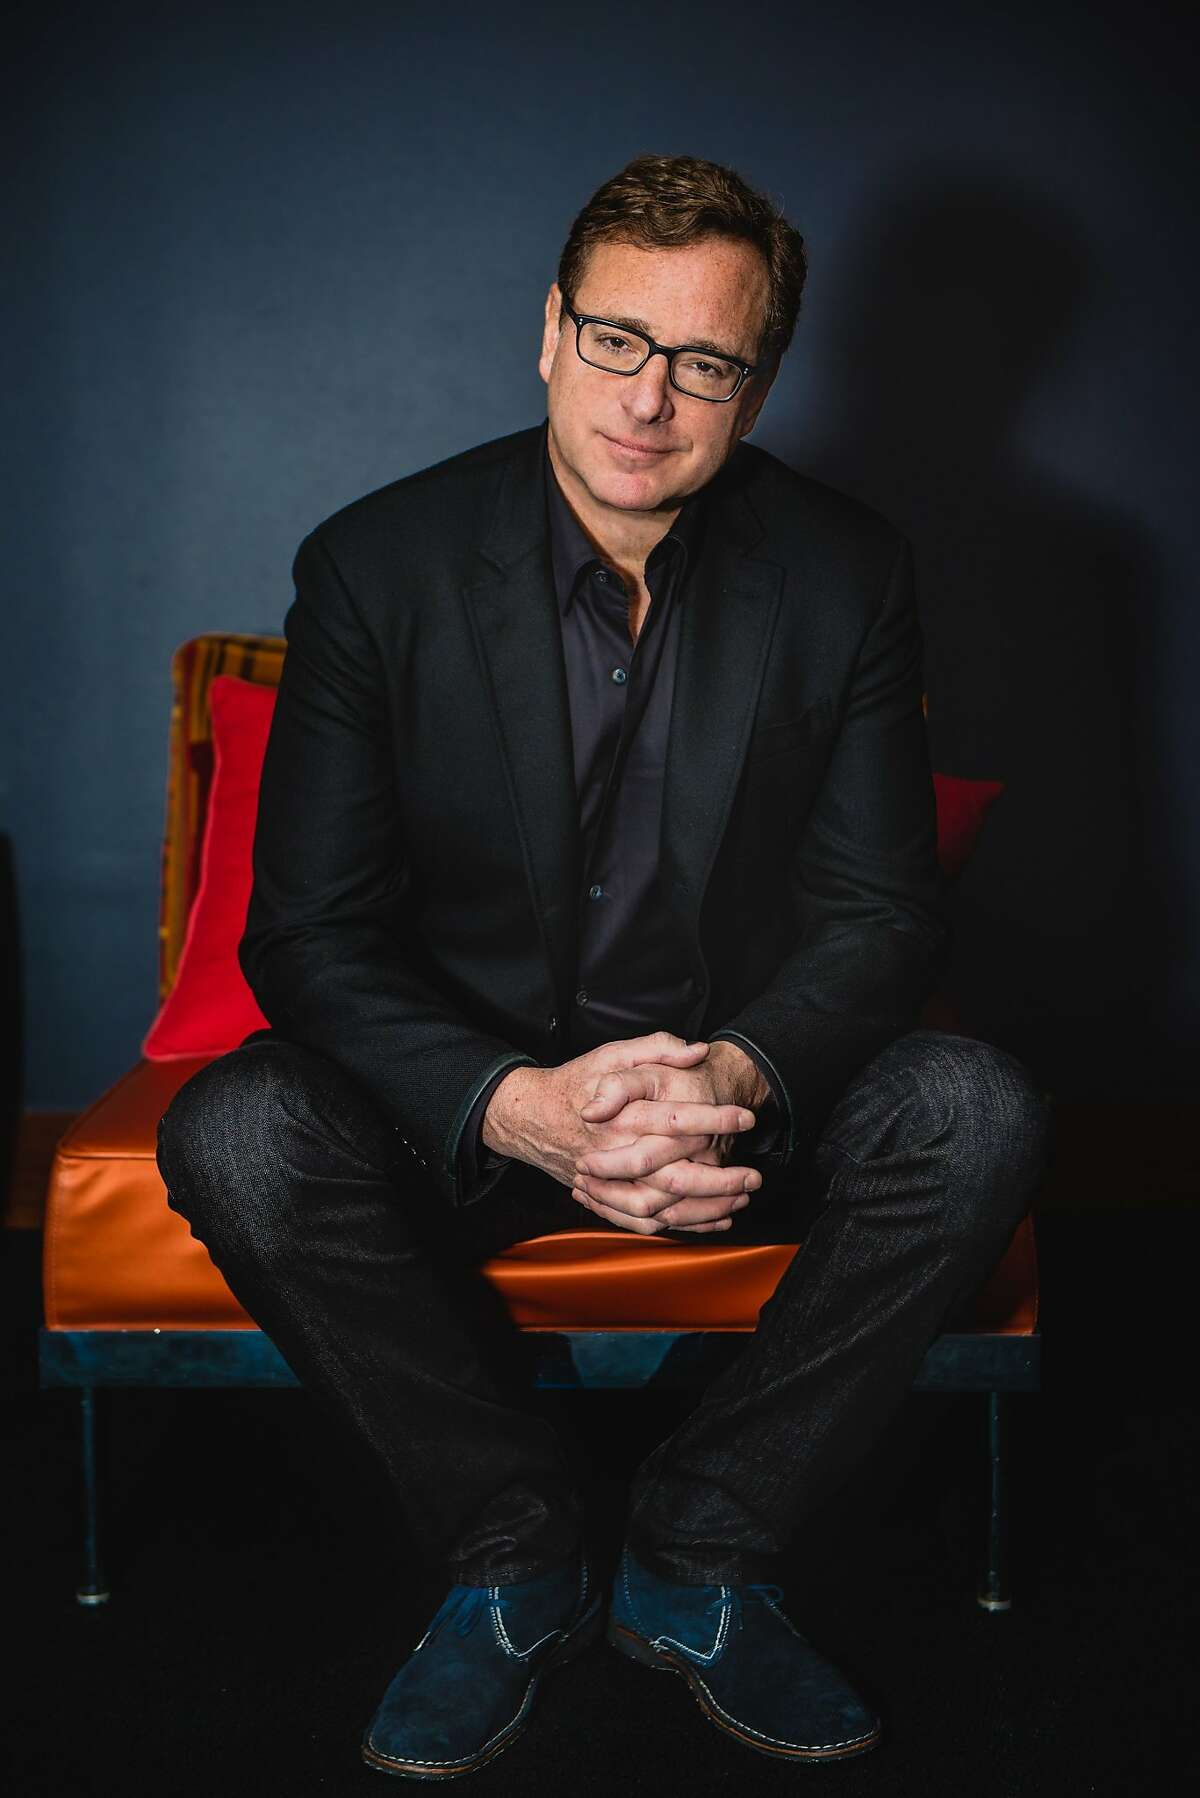 Actor and comedian Bob Saget is scheduled to perform a string of stand-up comedy shows at the San Jose Improv from Jan. 27-29, 2017.